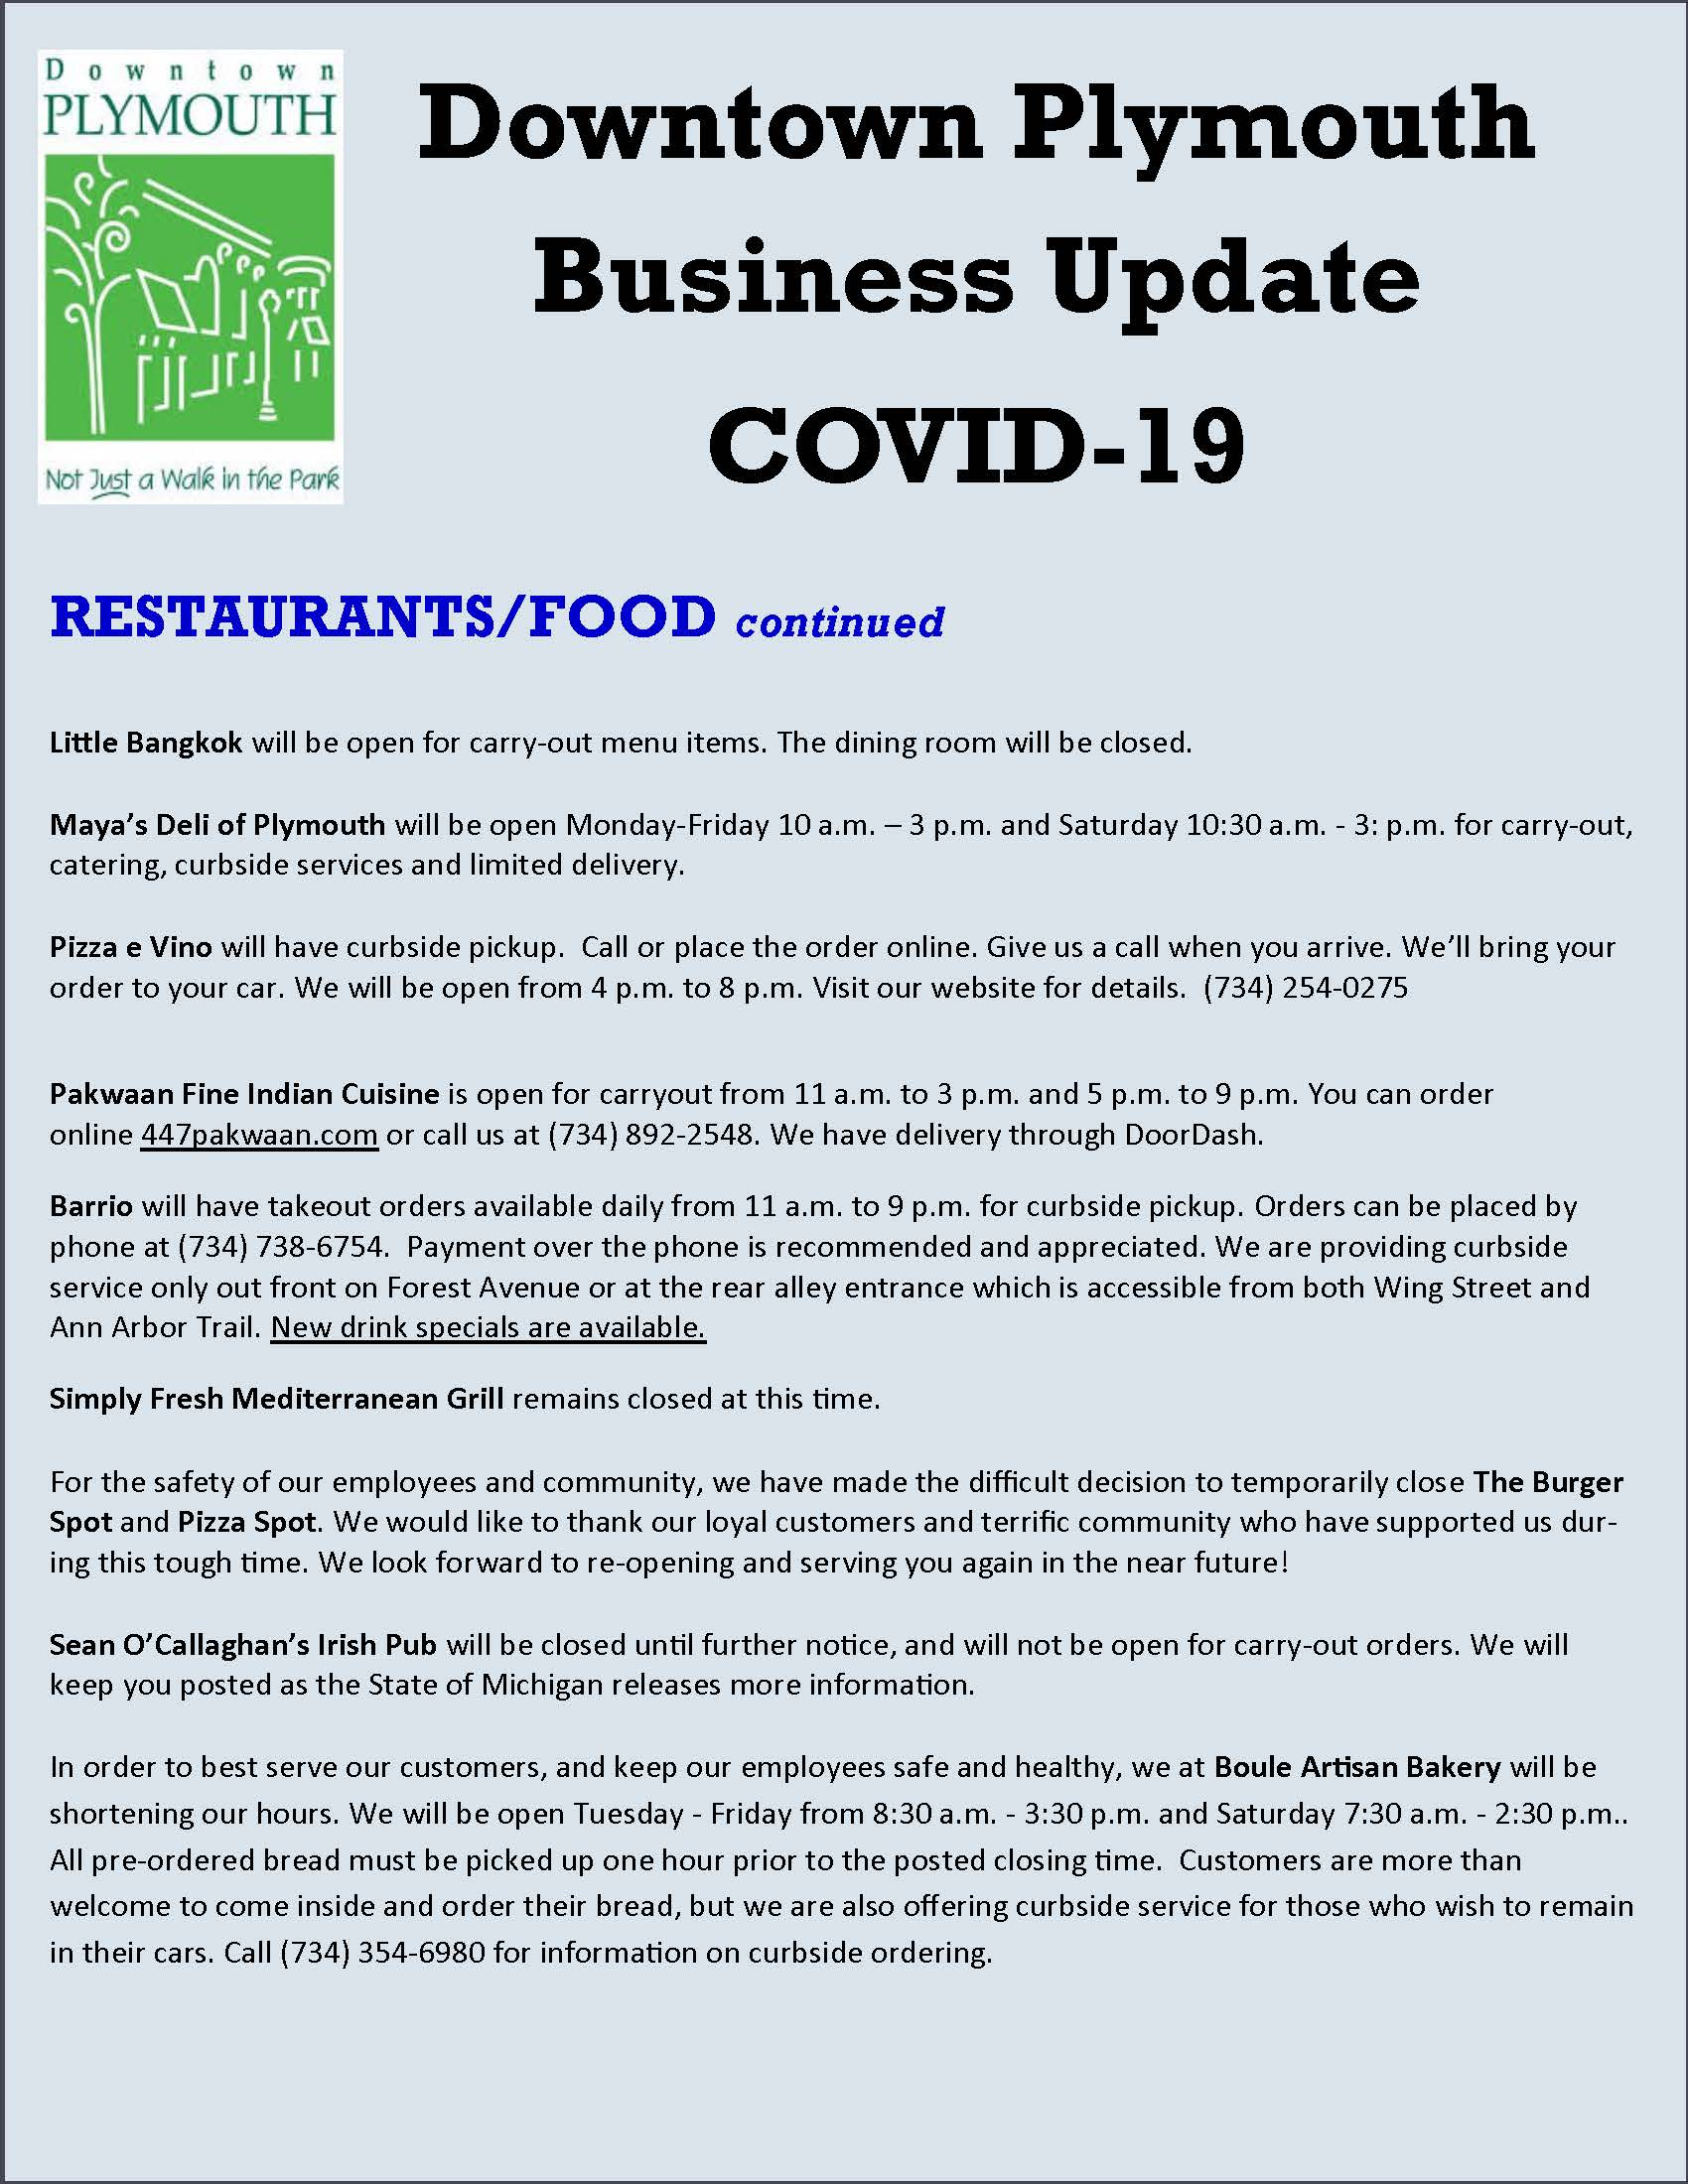 Downtown Plymouth business update 4-3_Page_04